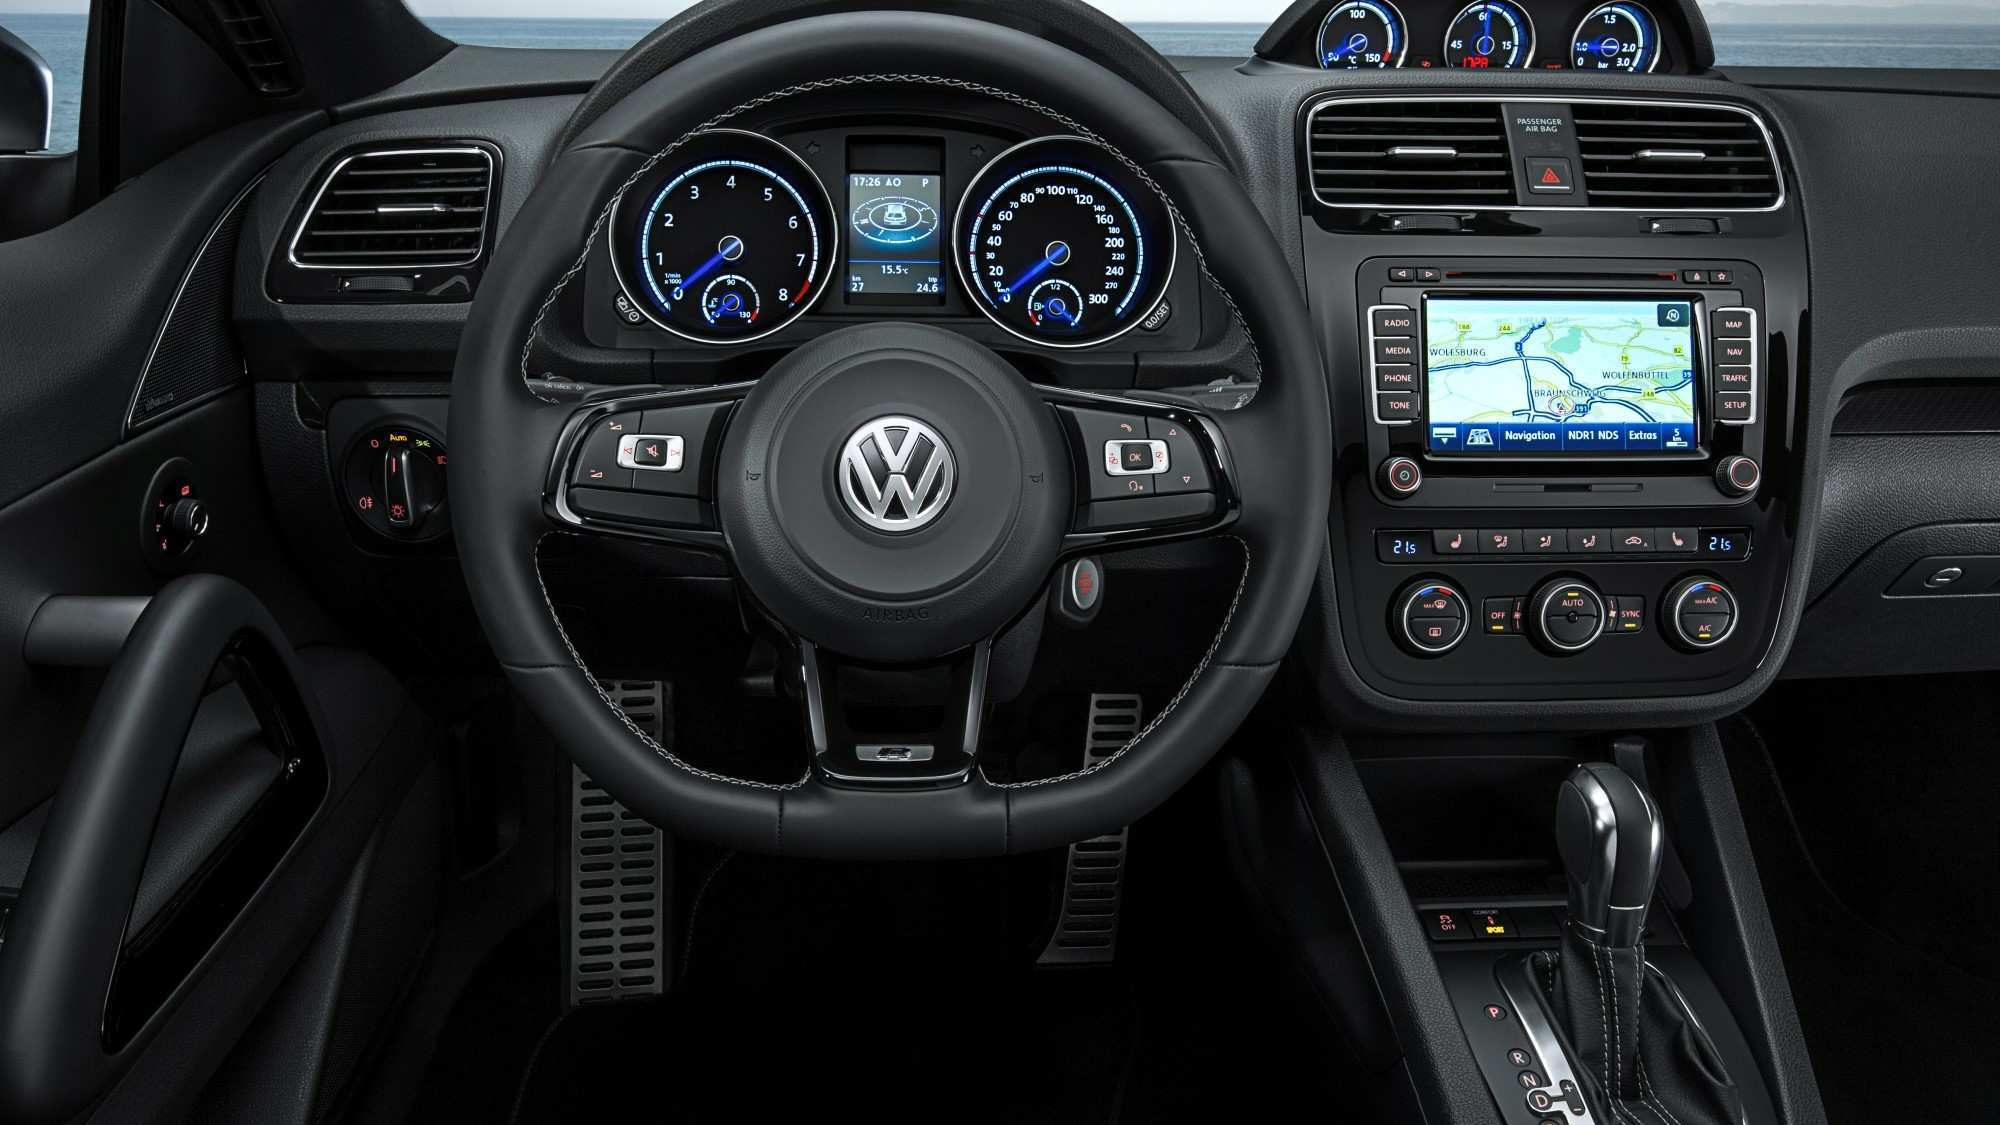 52 The Best 2019 Volkswagen Scirocco Price Design And Review